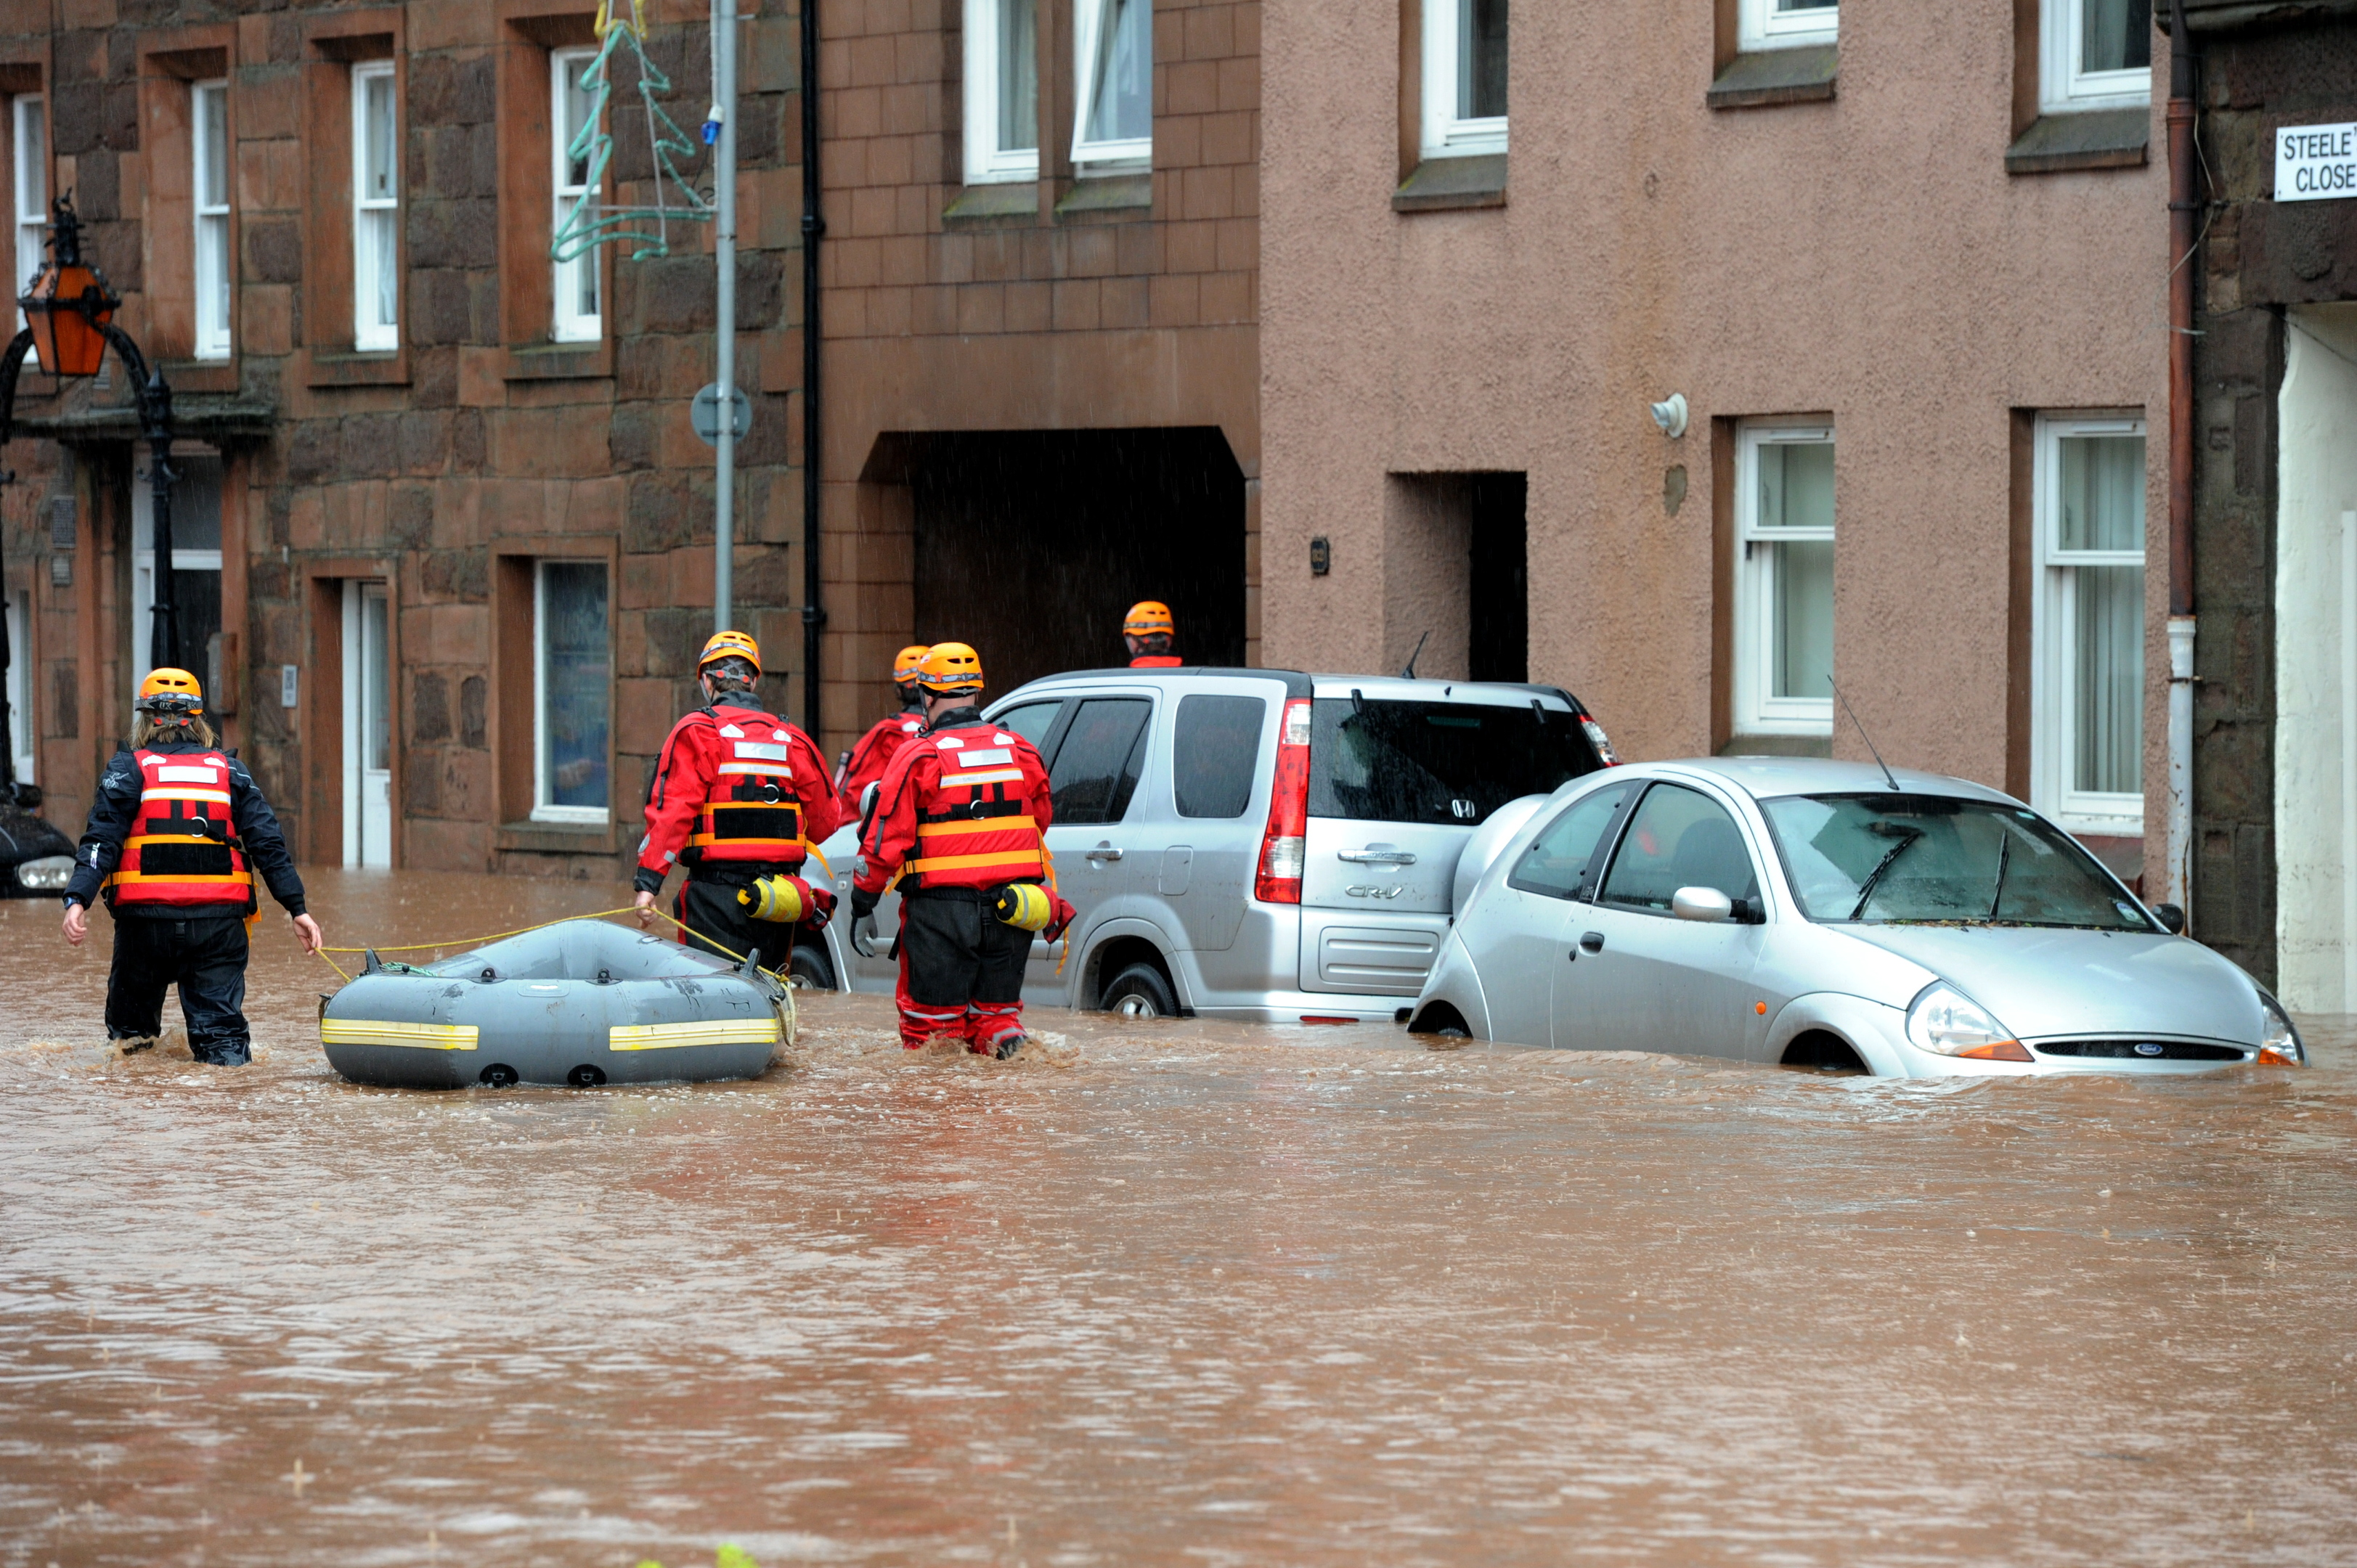 A rescue crew at work in Stonehaven's High Street after flood waters hit the town causing damage in December 2012.